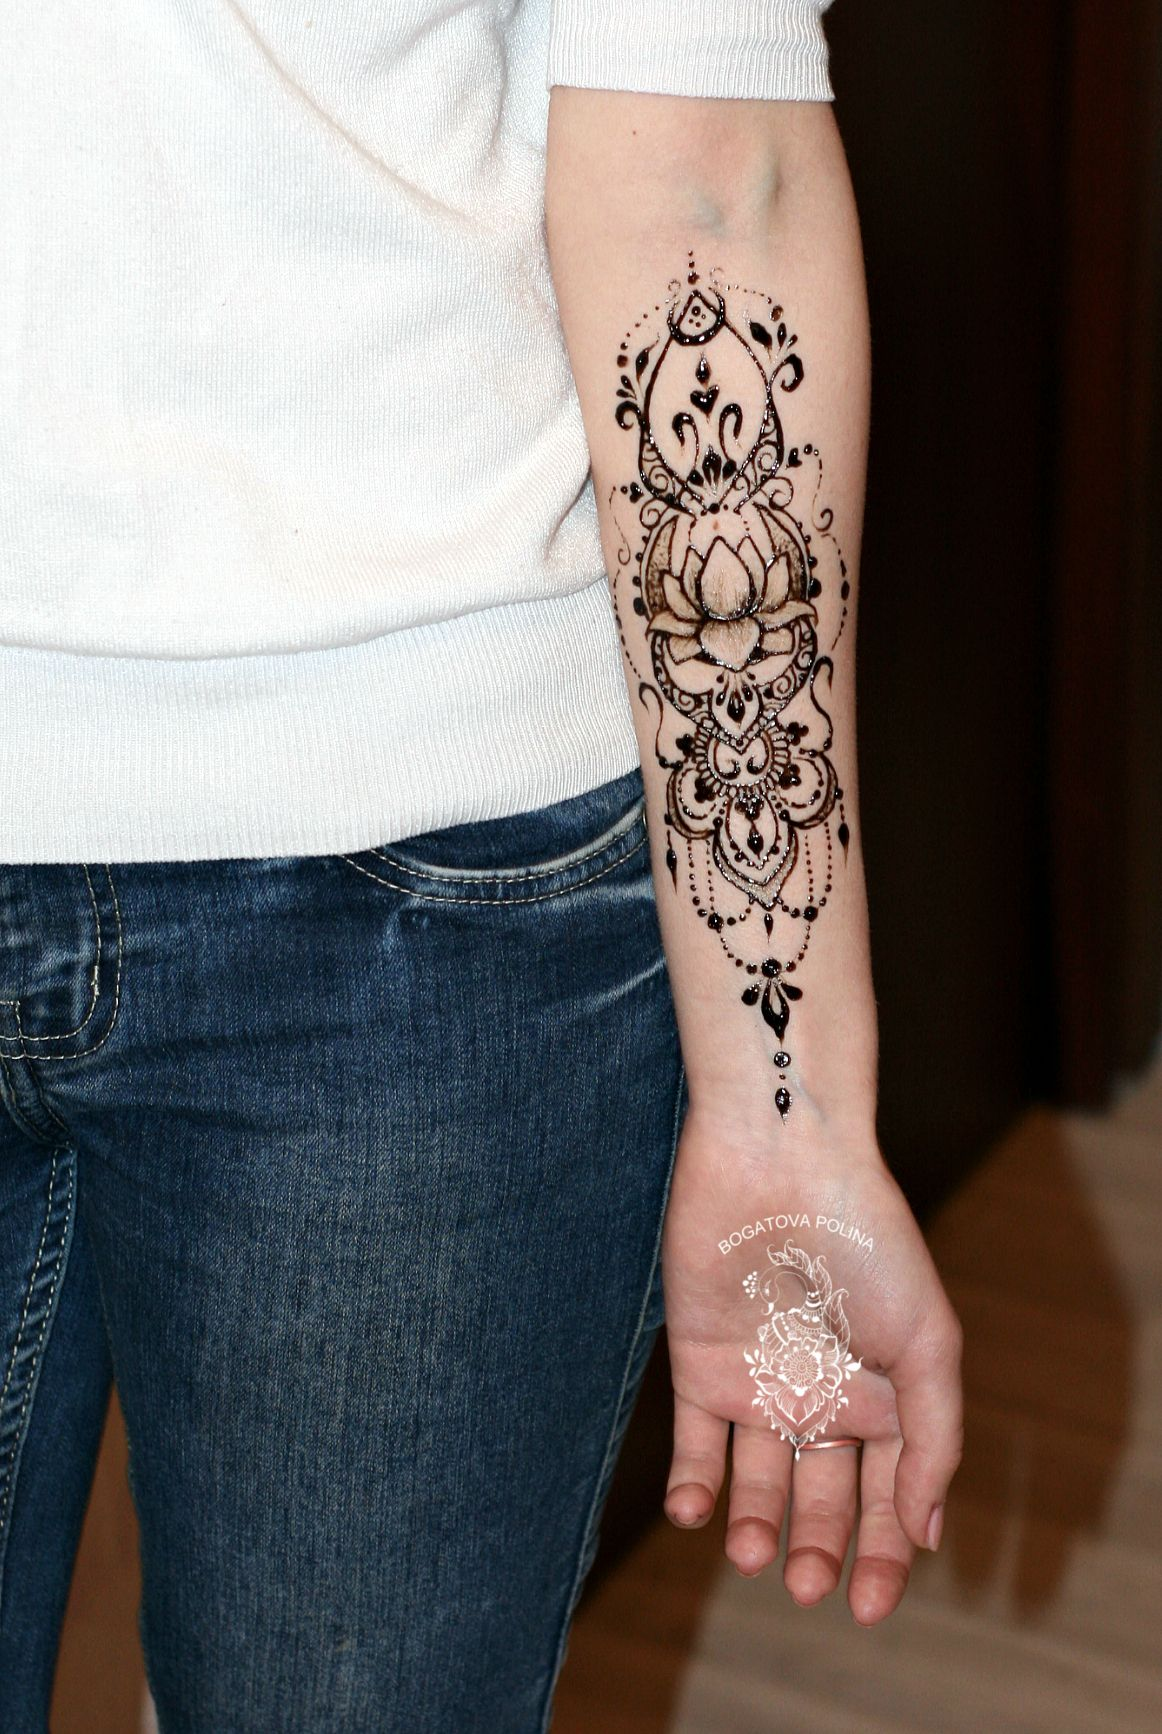 Wrist Henna Tattoo Pinterest Sheridanblasey: Pin By Mandy Santibanez On Henna